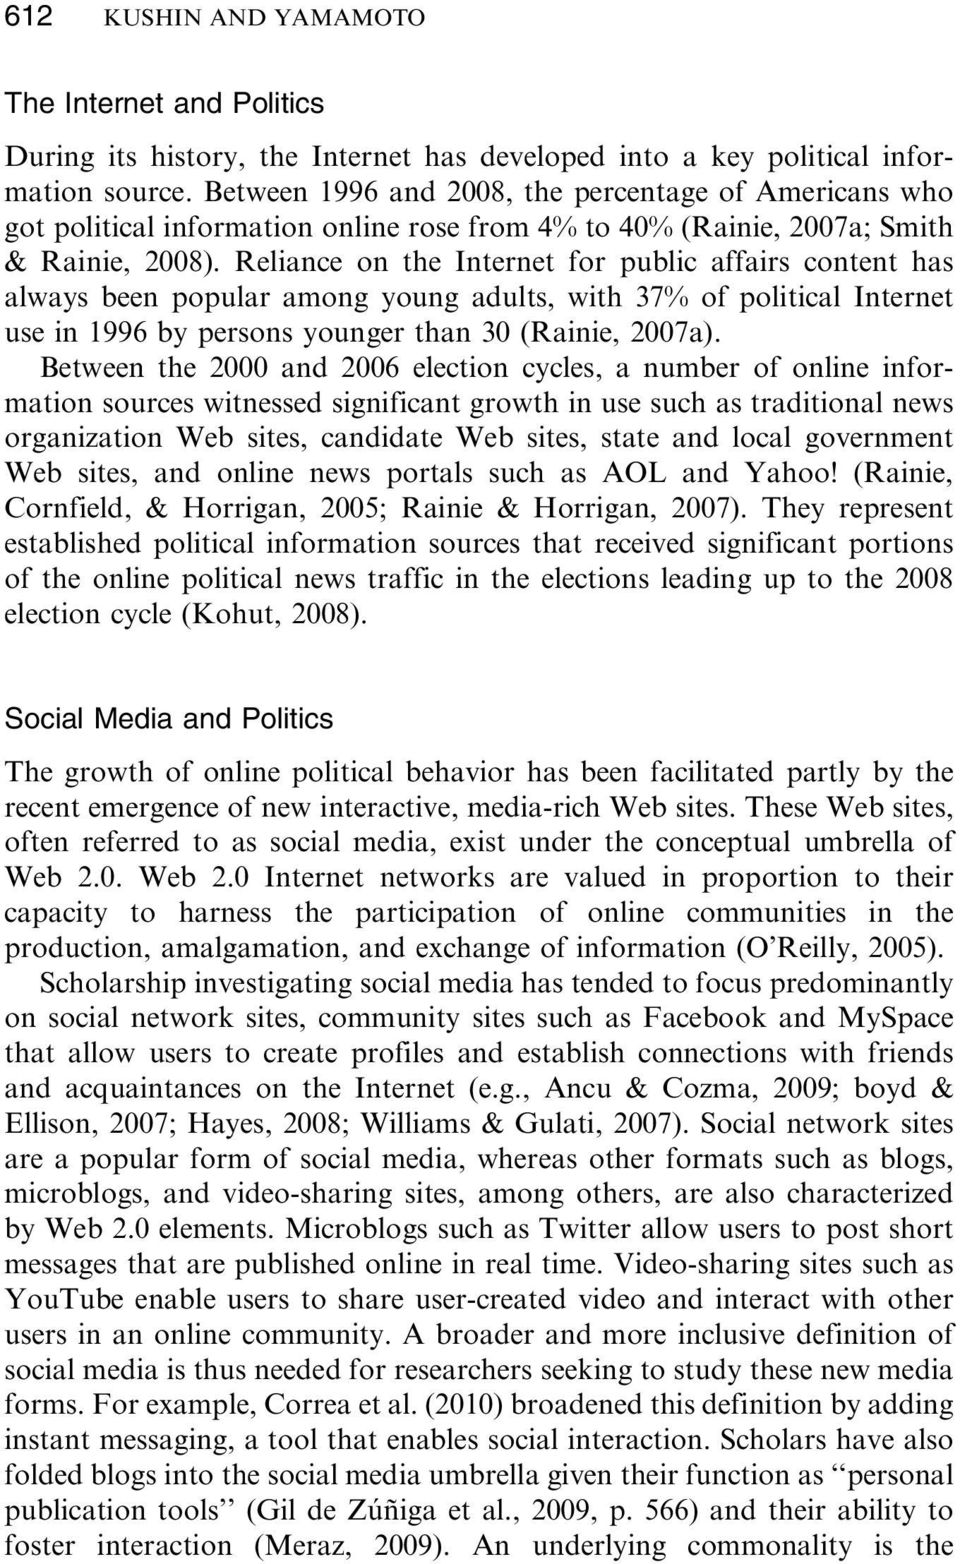 Reliance on the Internet for public affairs content has always been popular among young adults, with 37% of political Internet use in 1996 by persons younger than 30 (Rainie, 2007a).